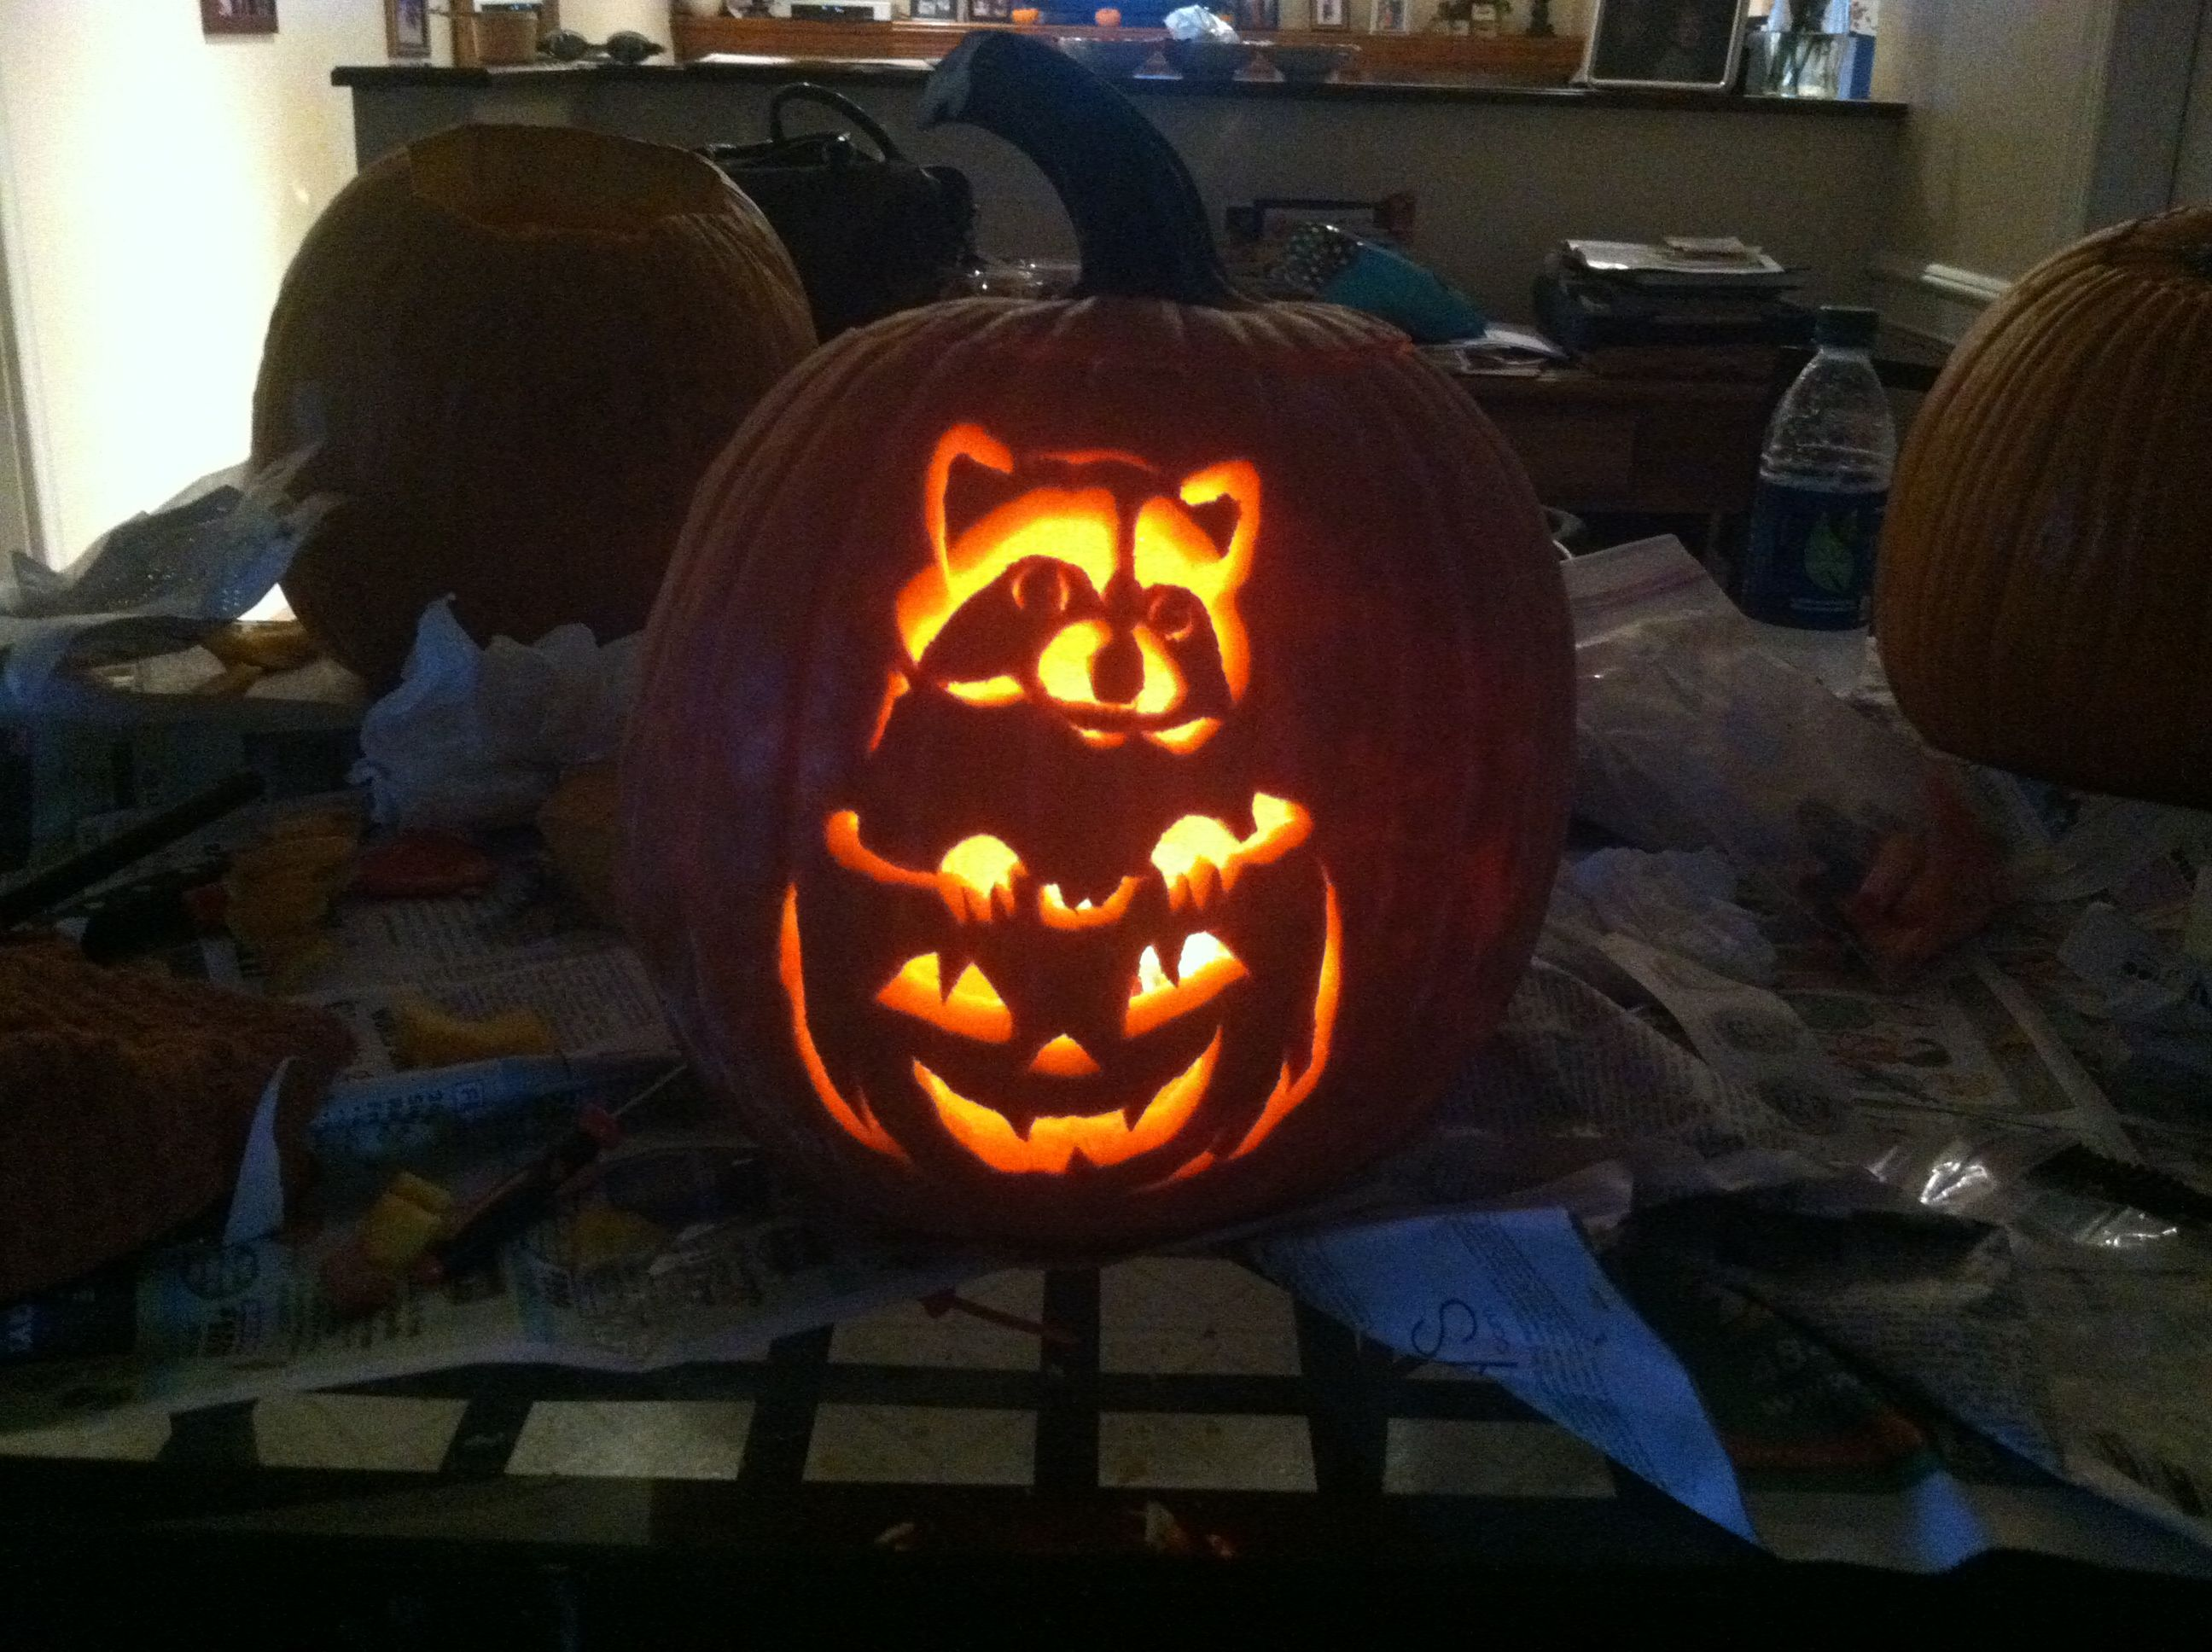 Pumpkin carving raccoon in a little bit of